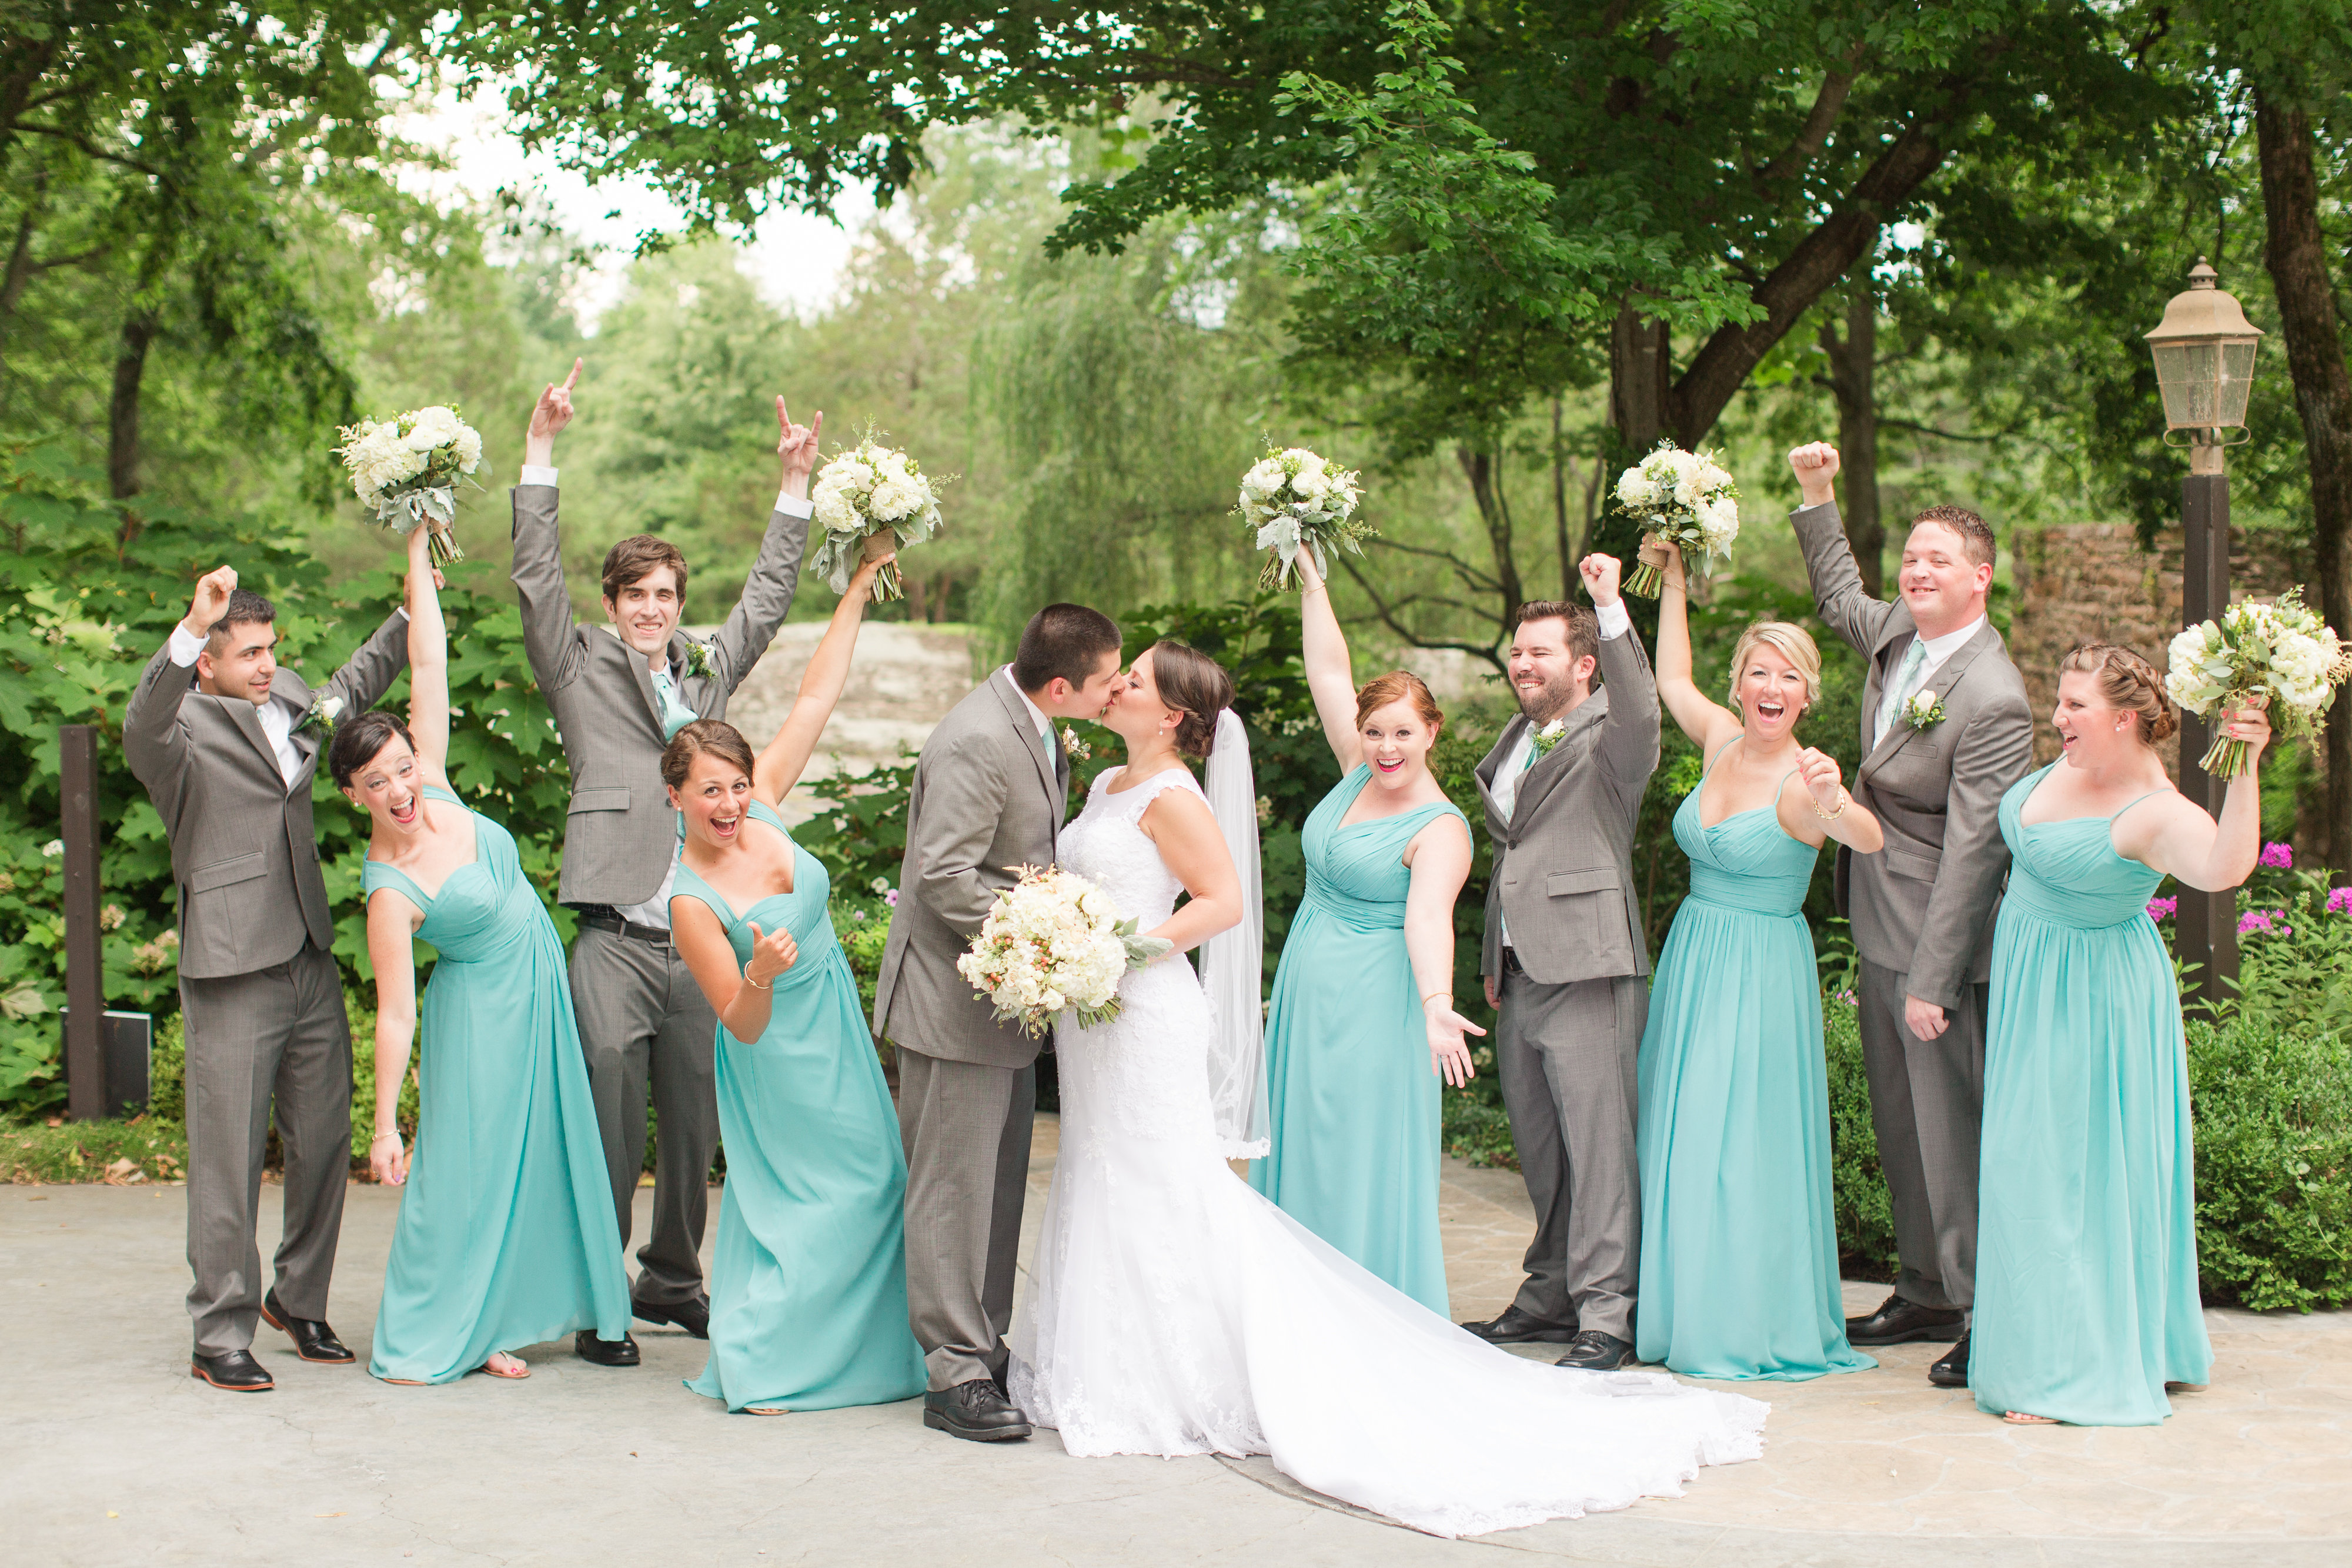 Curtis and Lauren's bridal party is definitely supportive of their marriage!